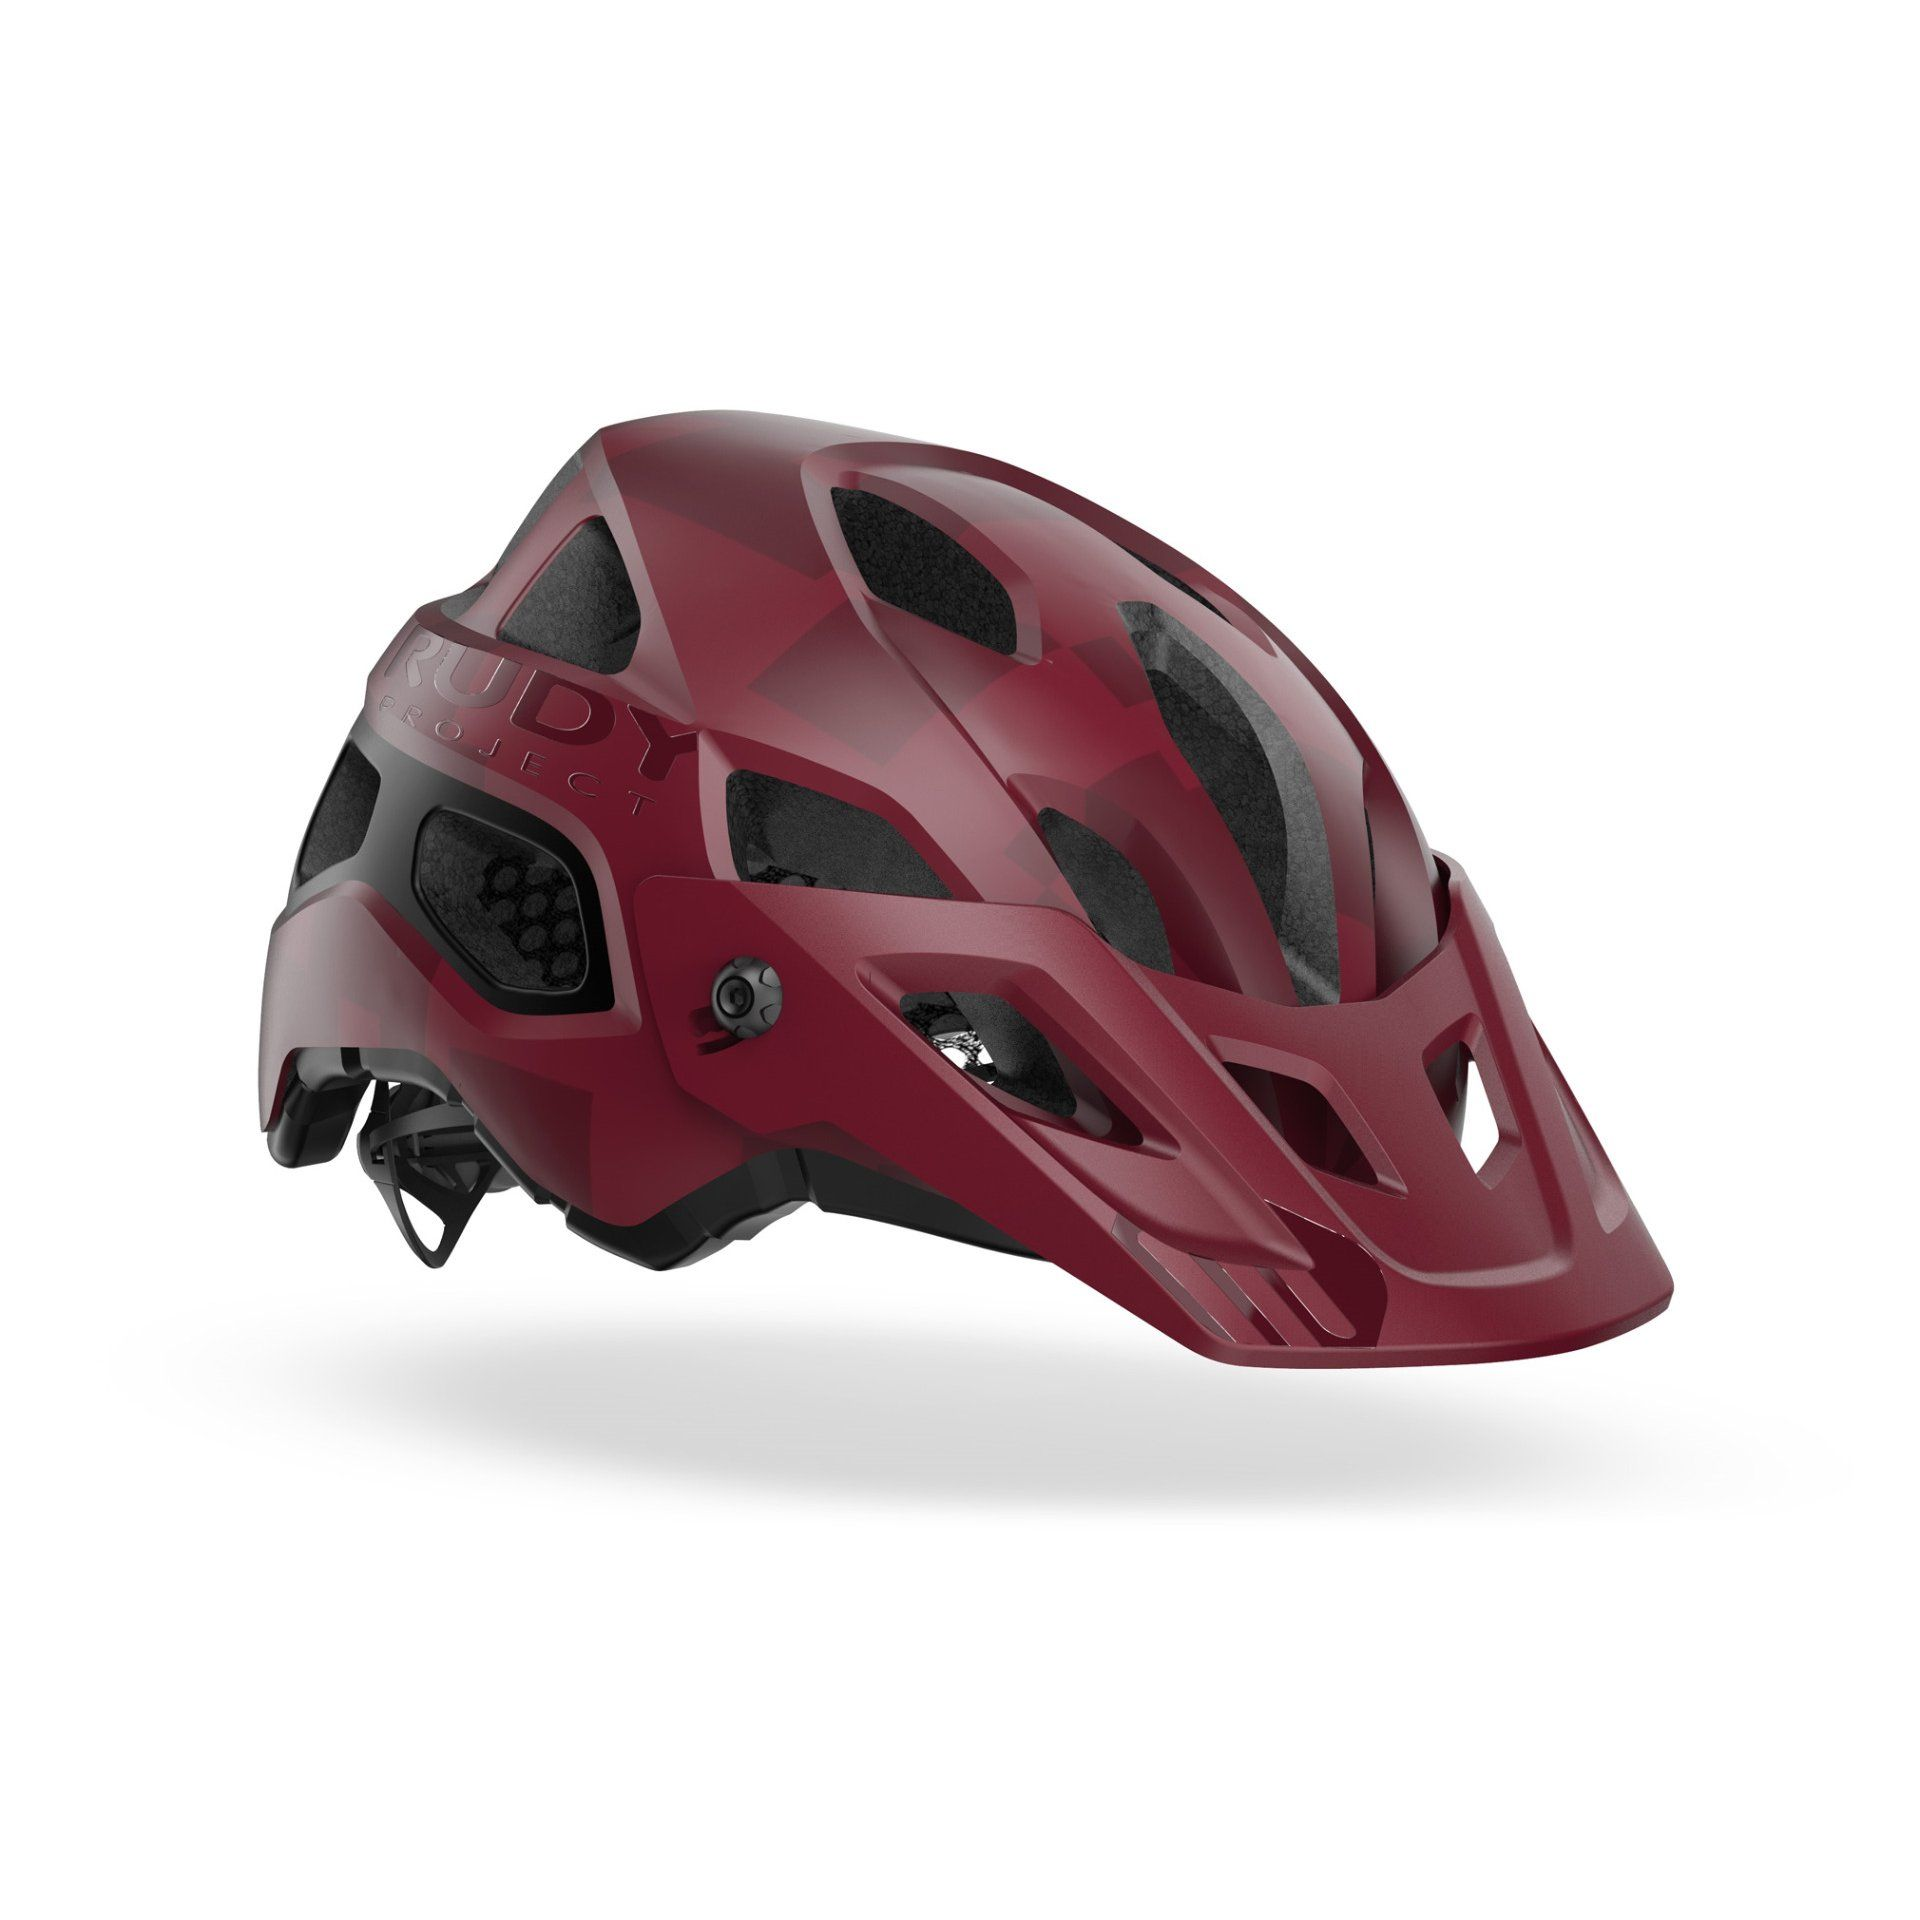 KASK ROWEROWY RUDY PROJECT PROTERA PLUS MERLOT HL800031